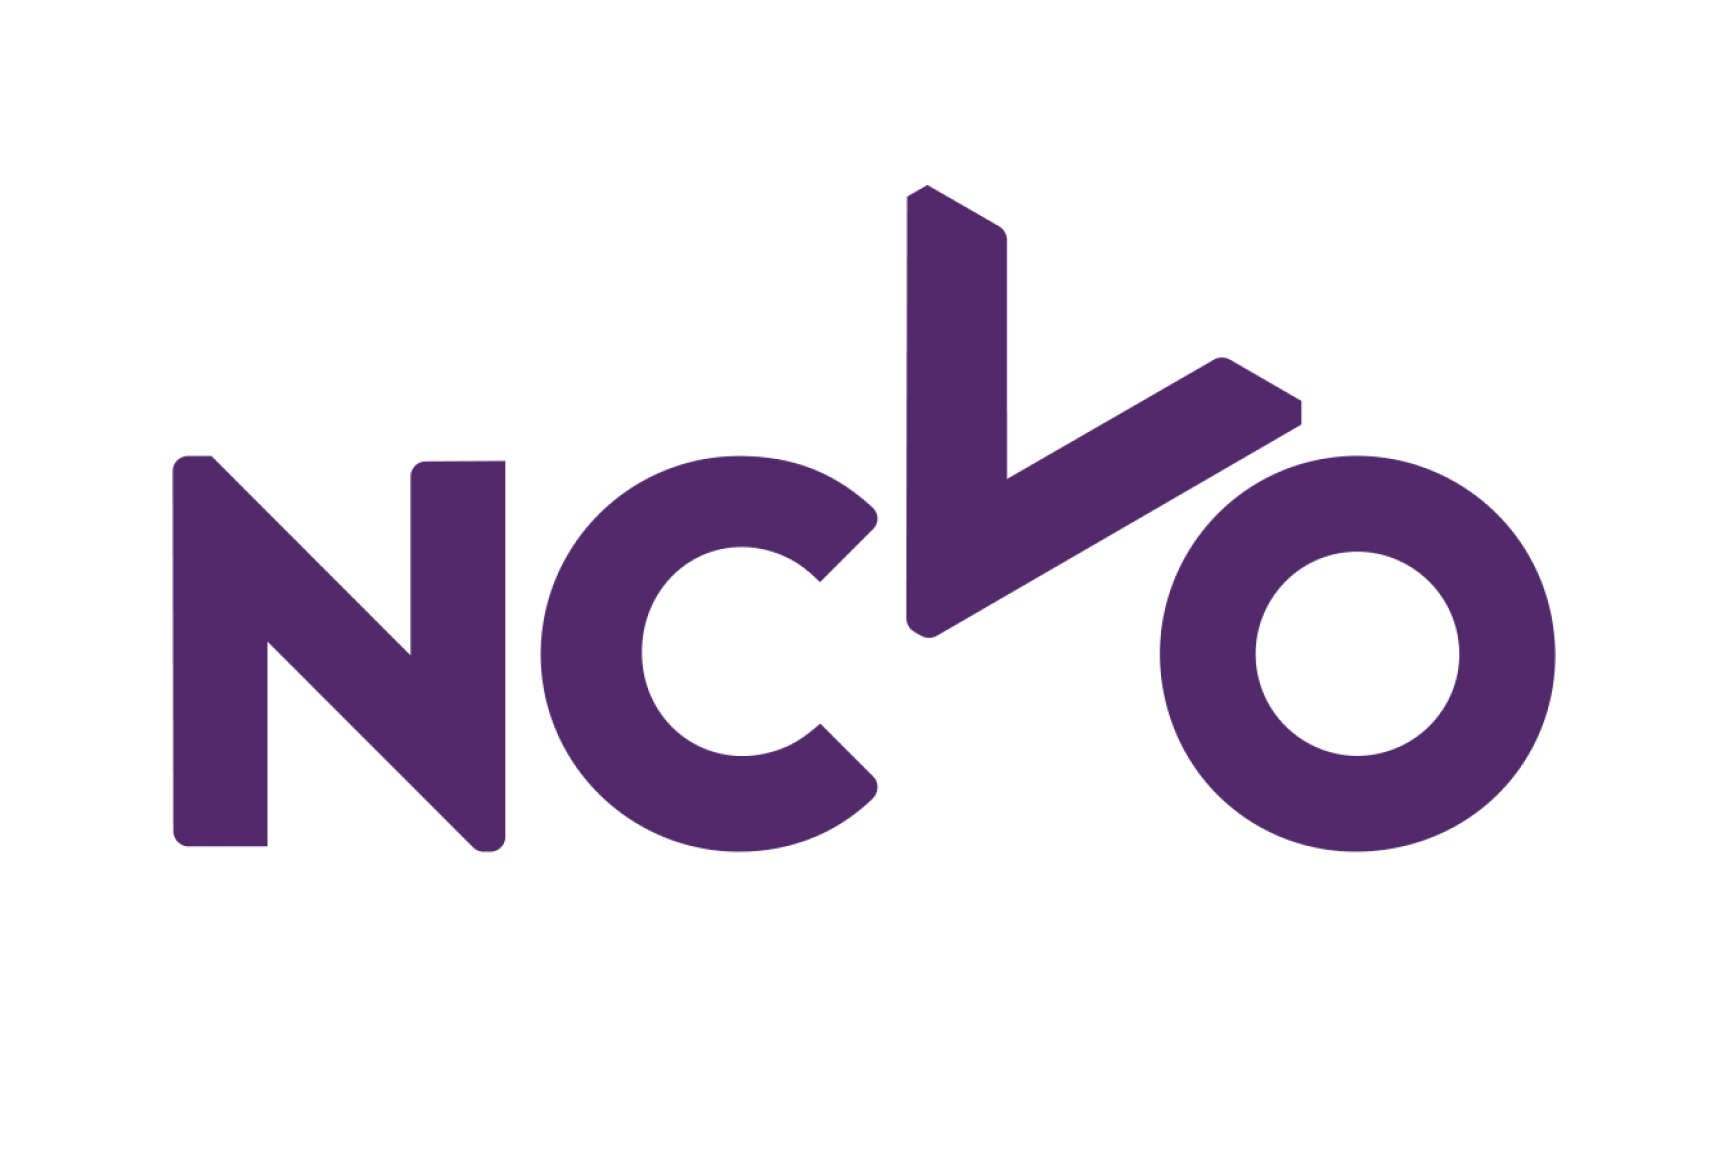 The National Council for Voluntary Organisations (NCVO)